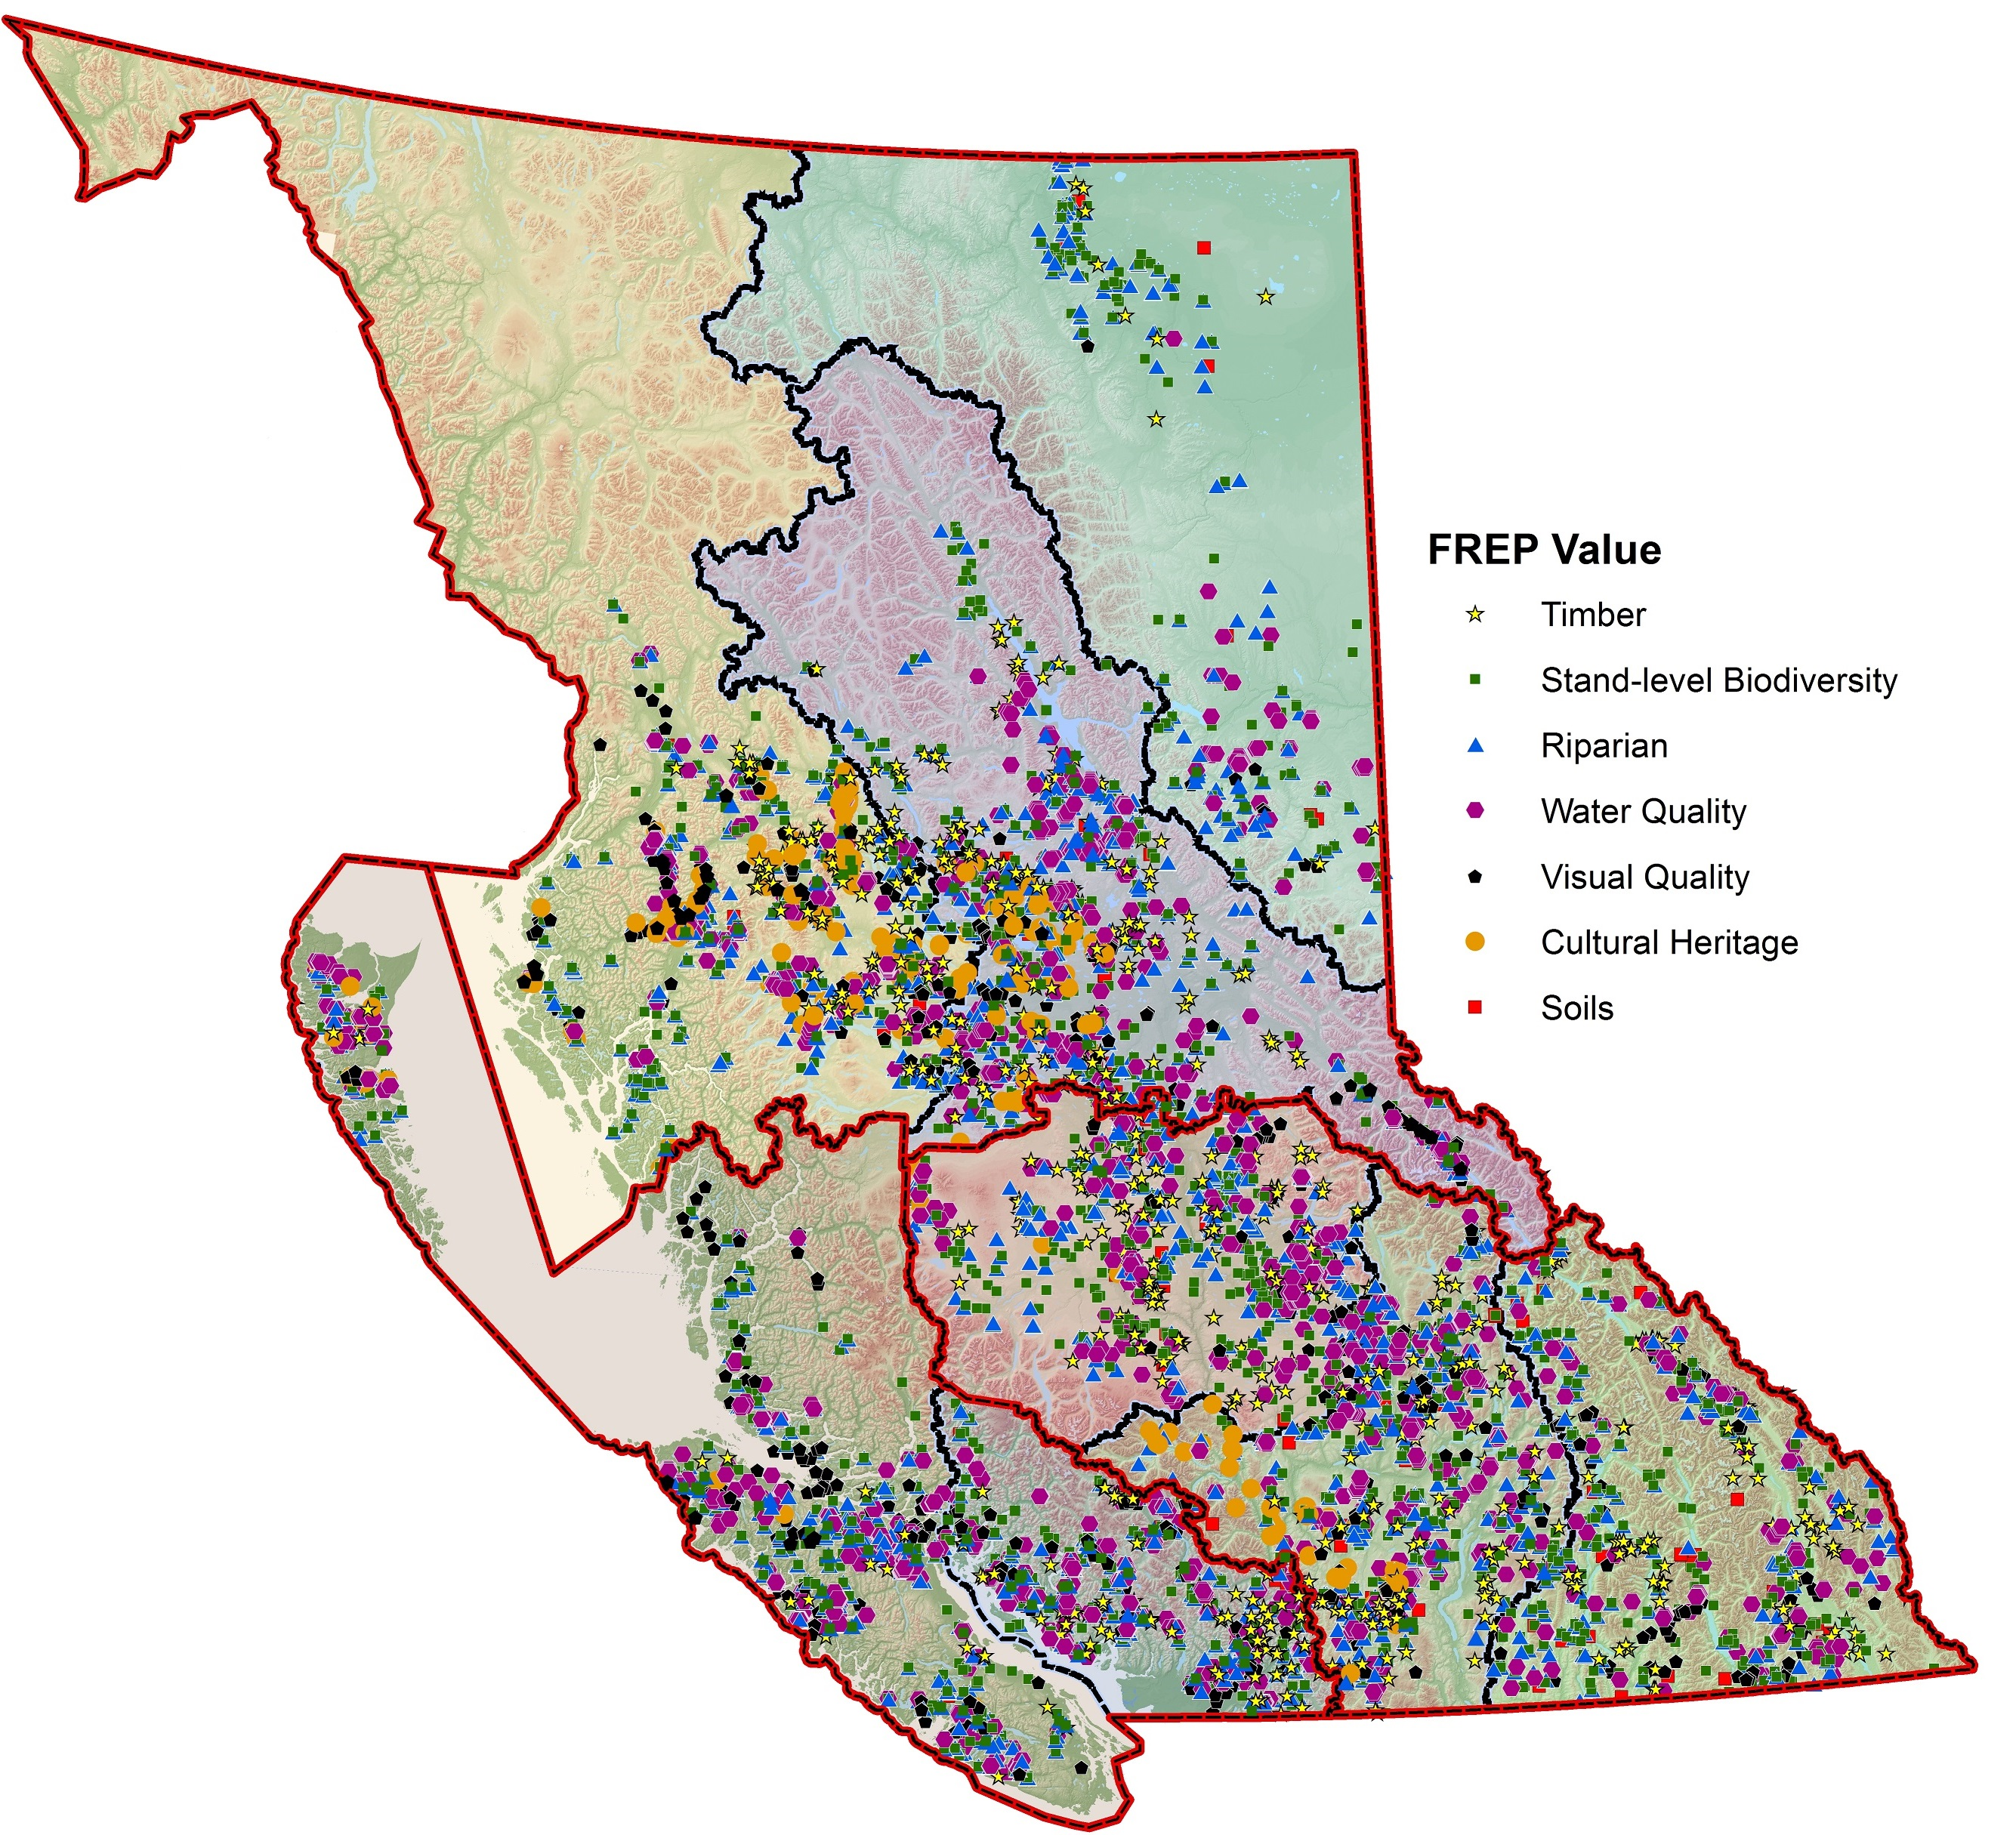 Sample site locations